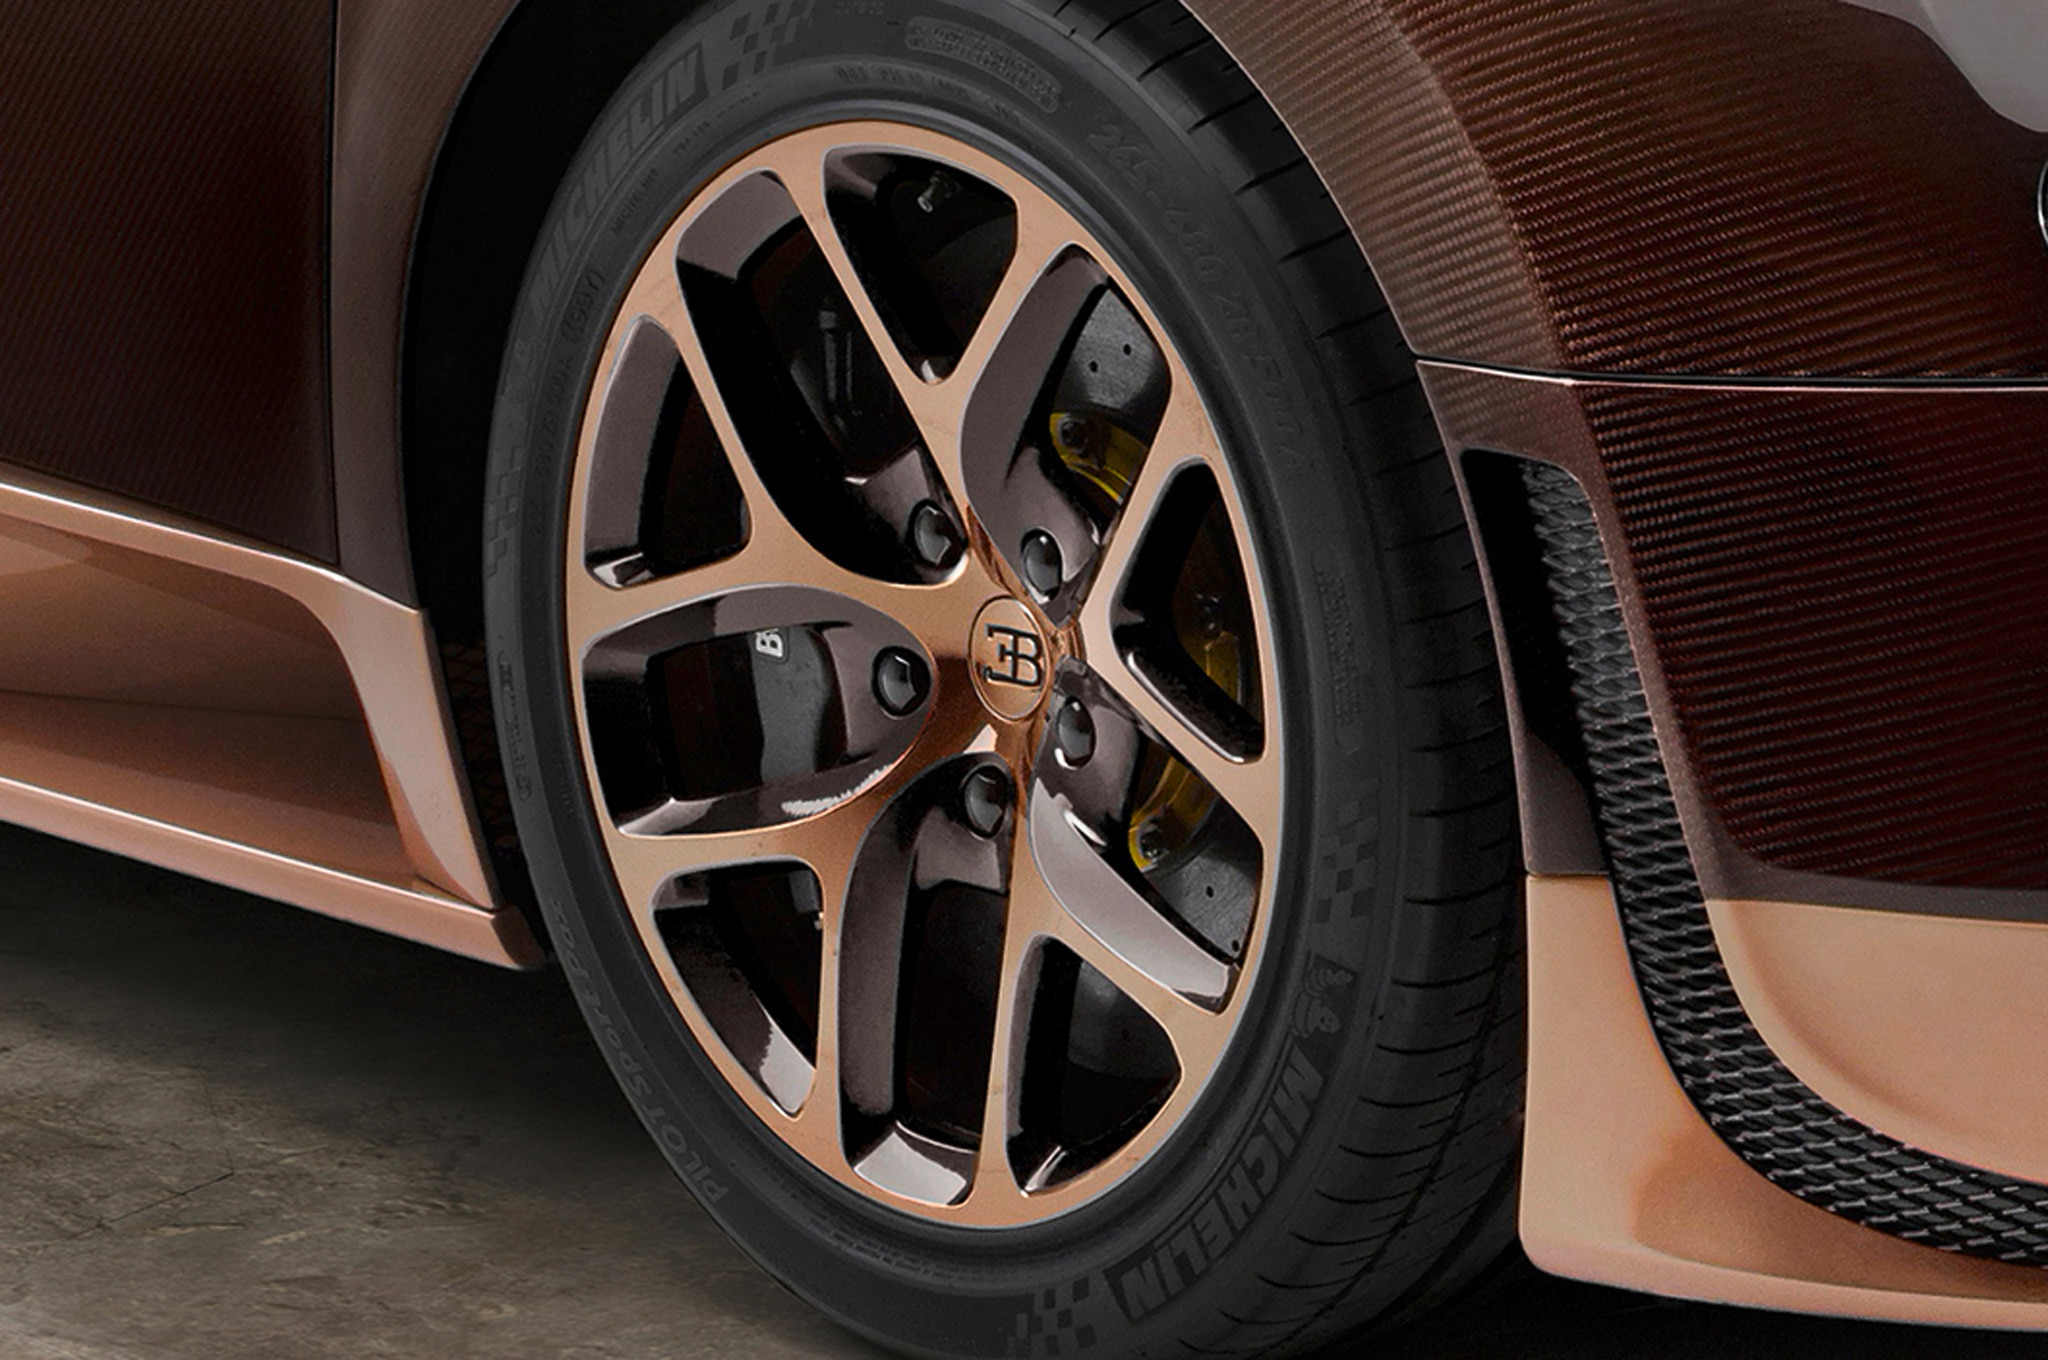 Bugatti-Veyron-Grand-Sport-Vitesse-Legends-Rembrandt-wheel-closeup Cozy Bugatti Veyron Rembrandt Edition Price Cars Trend